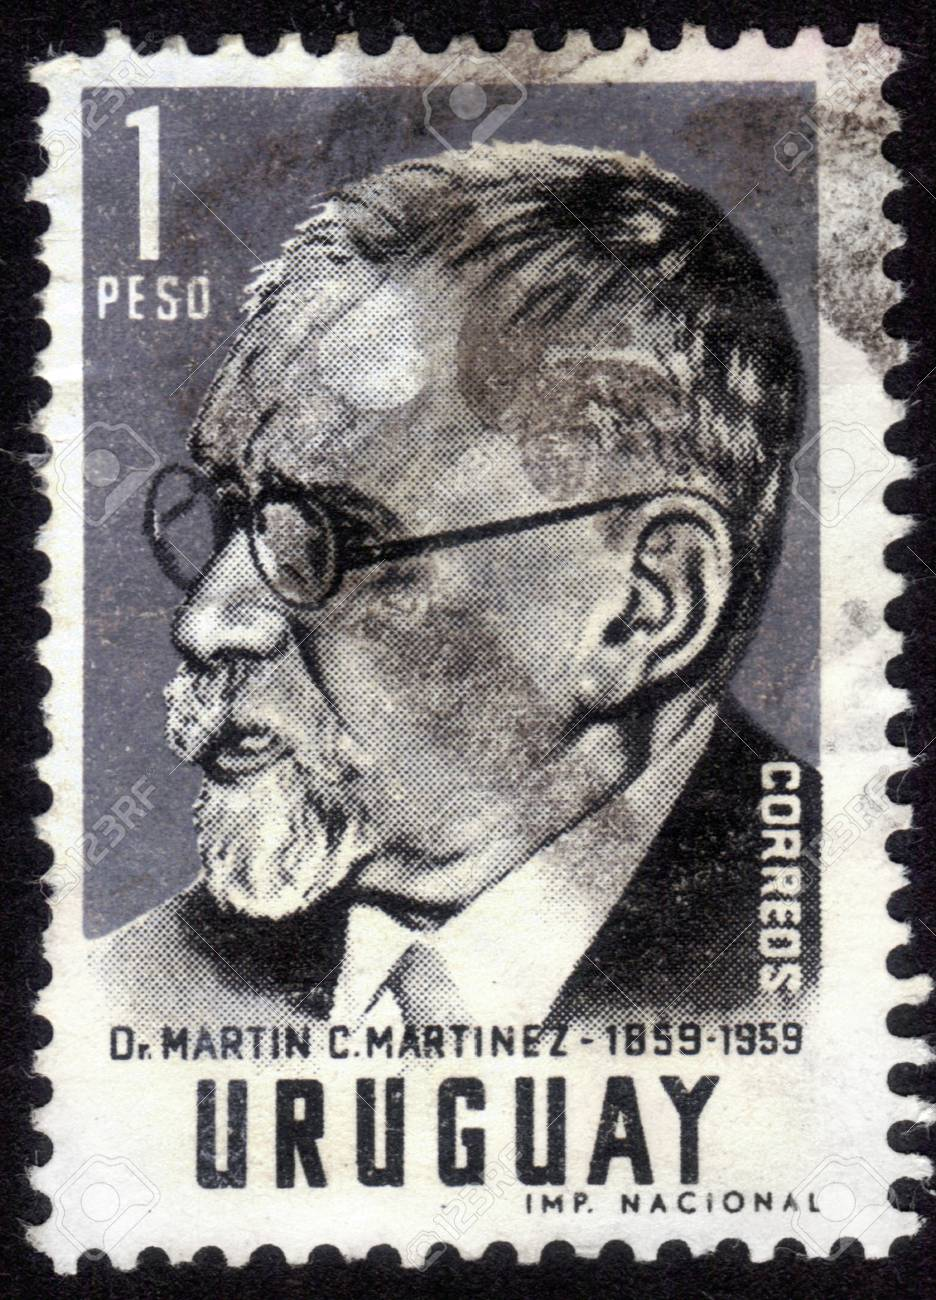 URUGUAY - CIRCA 1959: stamp printed by Uruguay, shows Martin C. Martinez, a lawyer and political figure in Uruguay, circa 1959 Stock Photo - 14296348